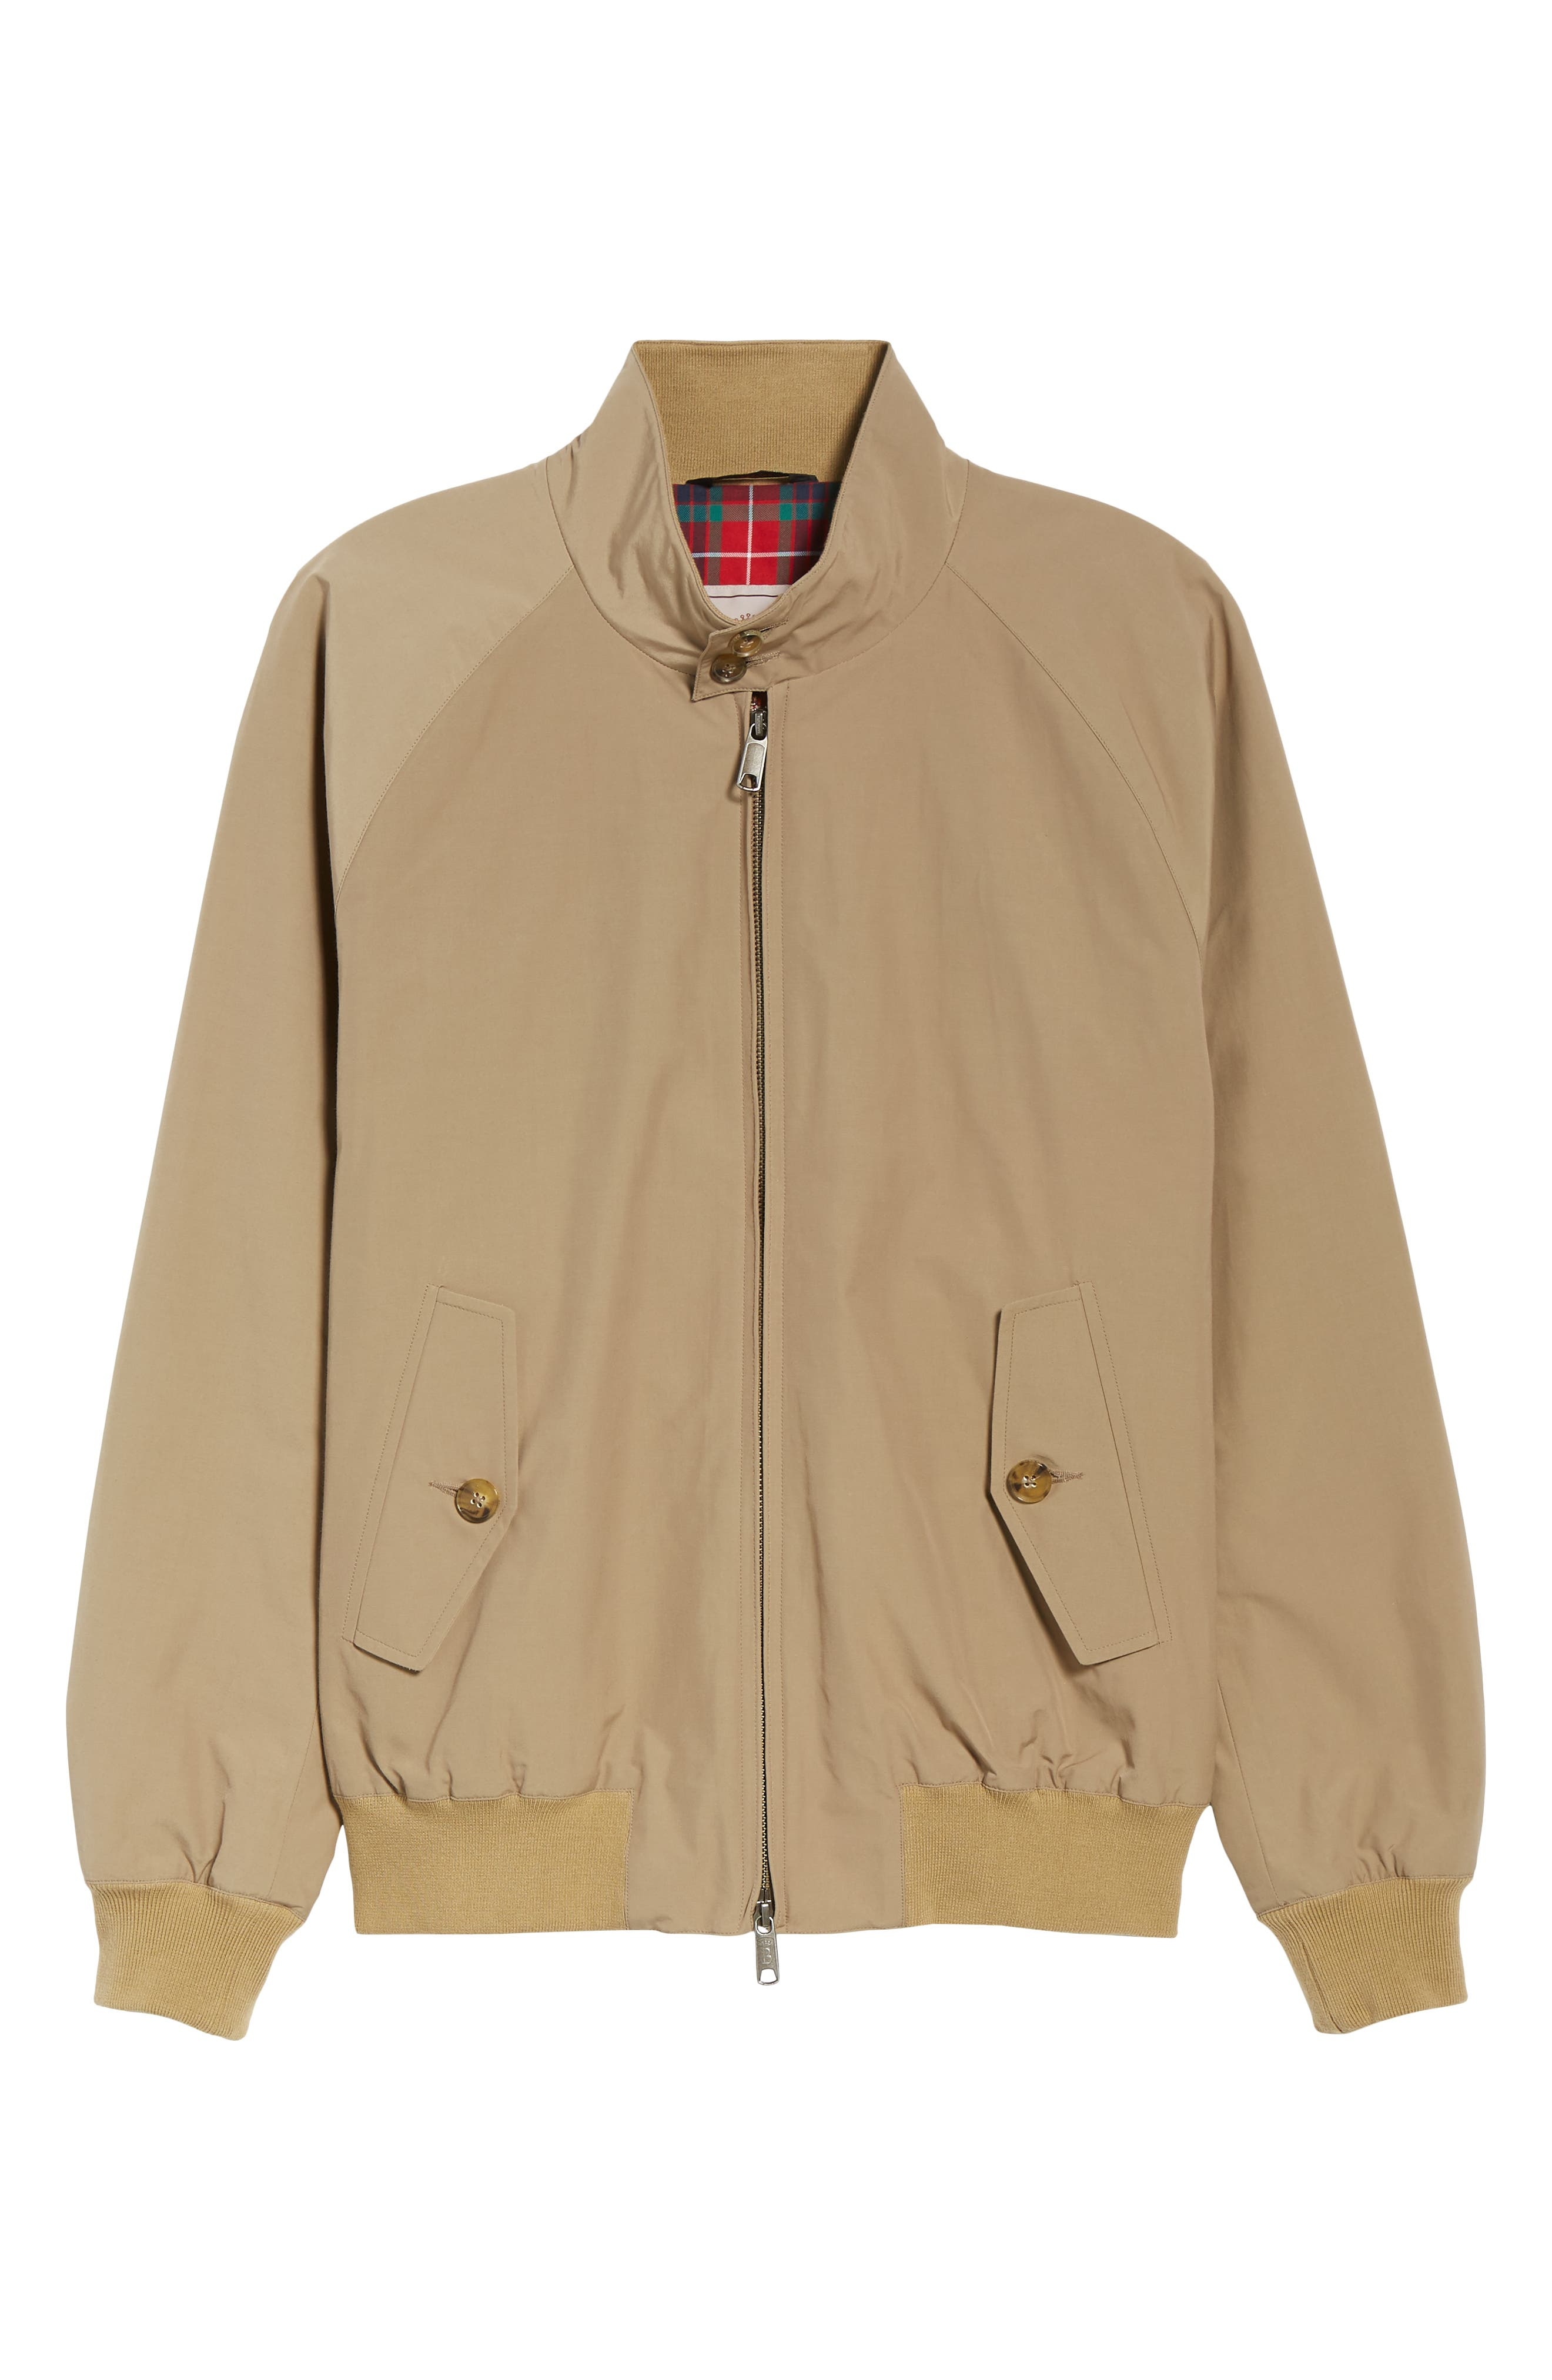 G9 Water Repellent Harrington Jacket,                             Alternate thumbnail 6, color,                             TAN